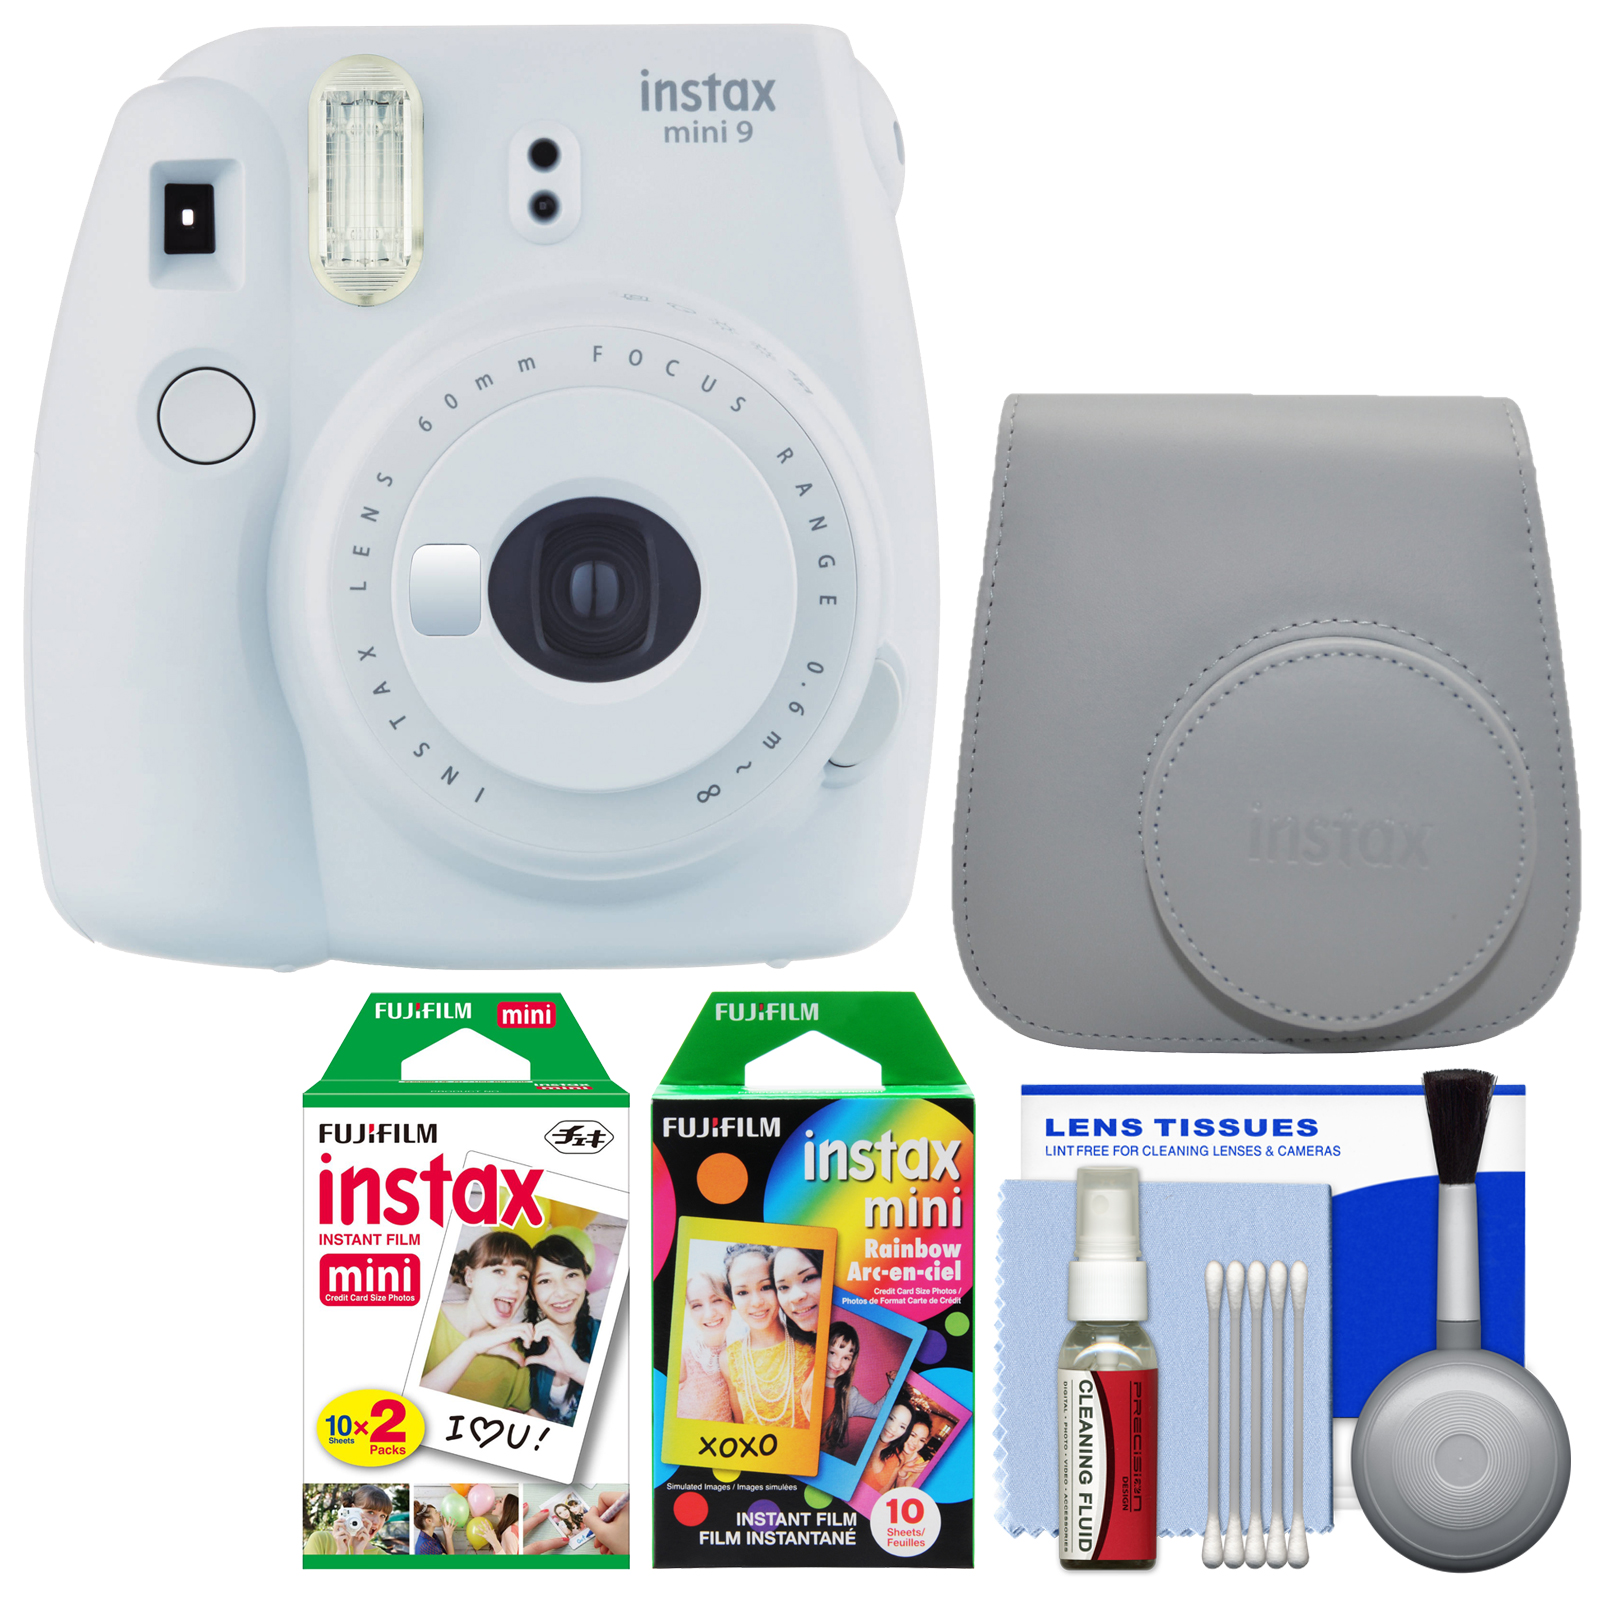 Fujifilm Instax Mini 9 Instant Film Camera (Smokey White) with Case + 20 Twin & 10 Rainbow Prints + Cleaning Kit